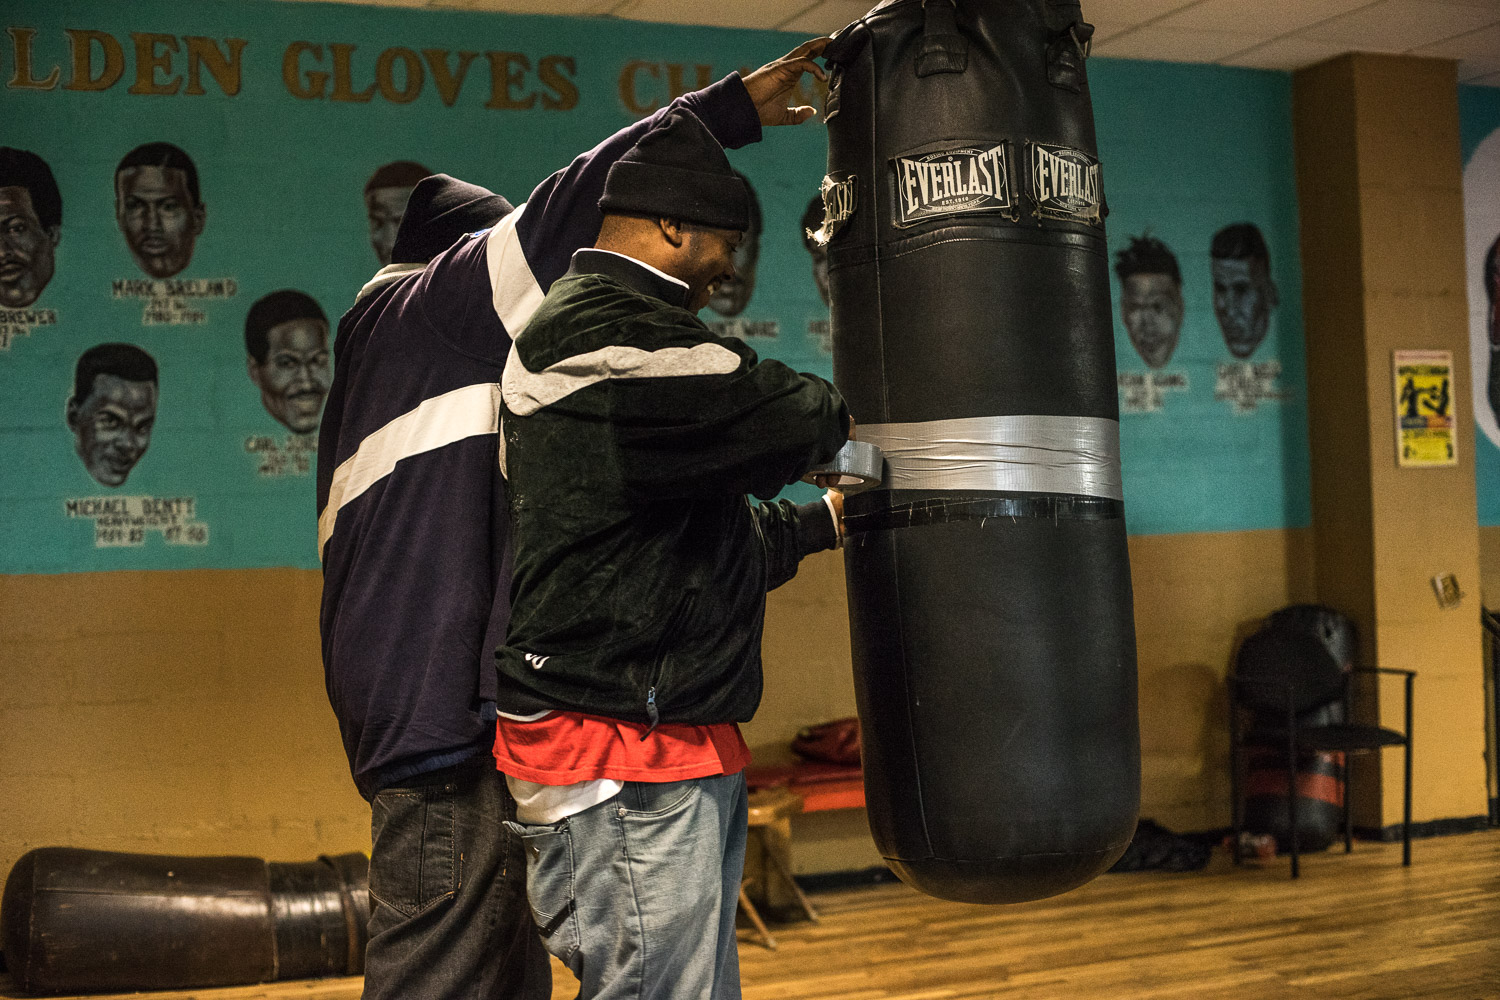 """Nate Boyd (50) puts strong insulation tape around a splitting punch bag. Situated in an economically disadvantaged area, maintaining, heating and opening the gym is a constant struggle. """"I'm tired man. Everybody's tired"""", says Nate Boyd (50), head coach at the boxing gym."""